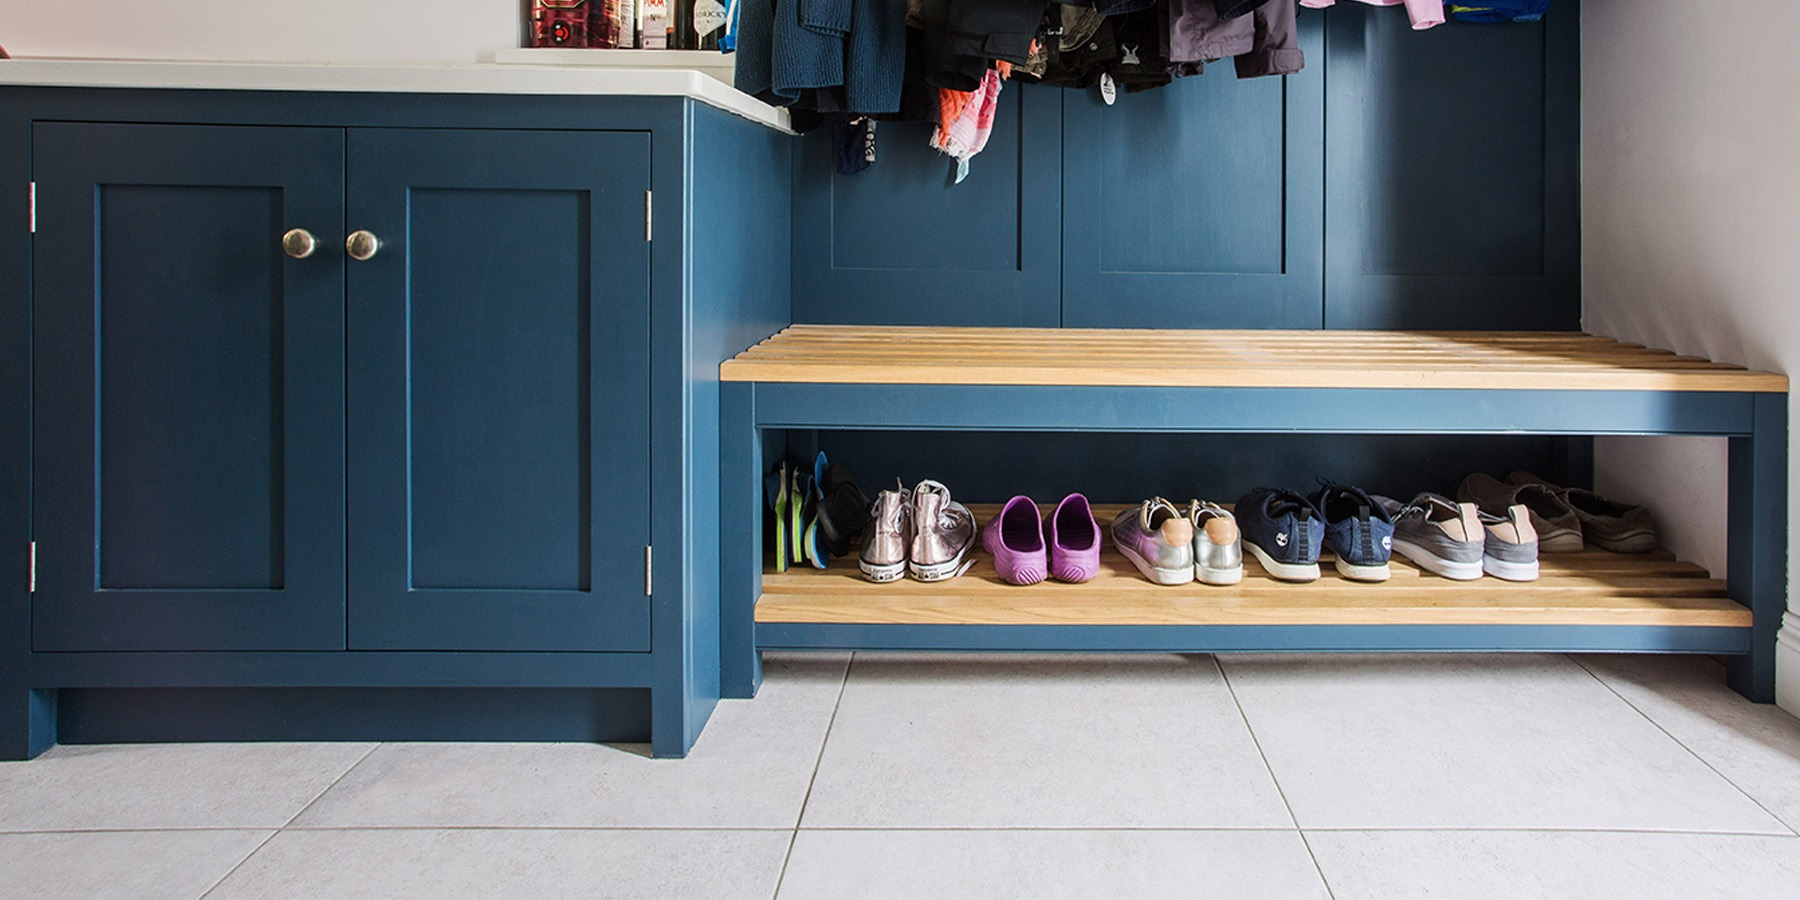 Bespoke Bootroom Storage Solutions - Handmade bench seating with shoe storage solutions.